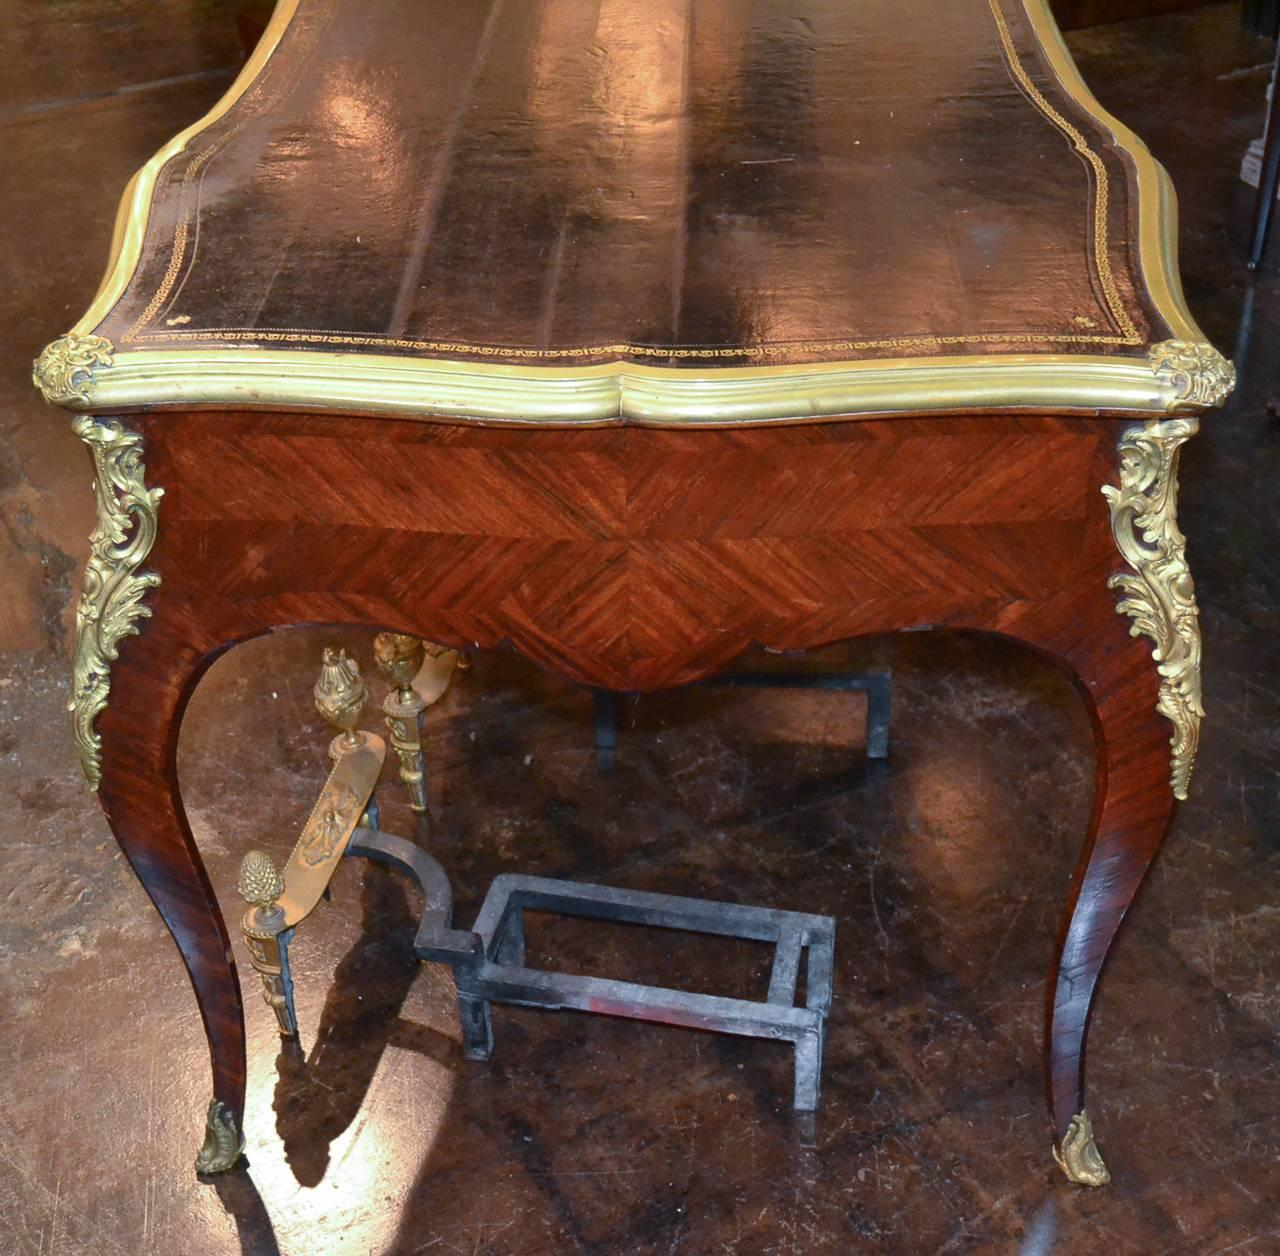 French louis xv bureau plat for sale at 1stdibs for Bureau louis xv